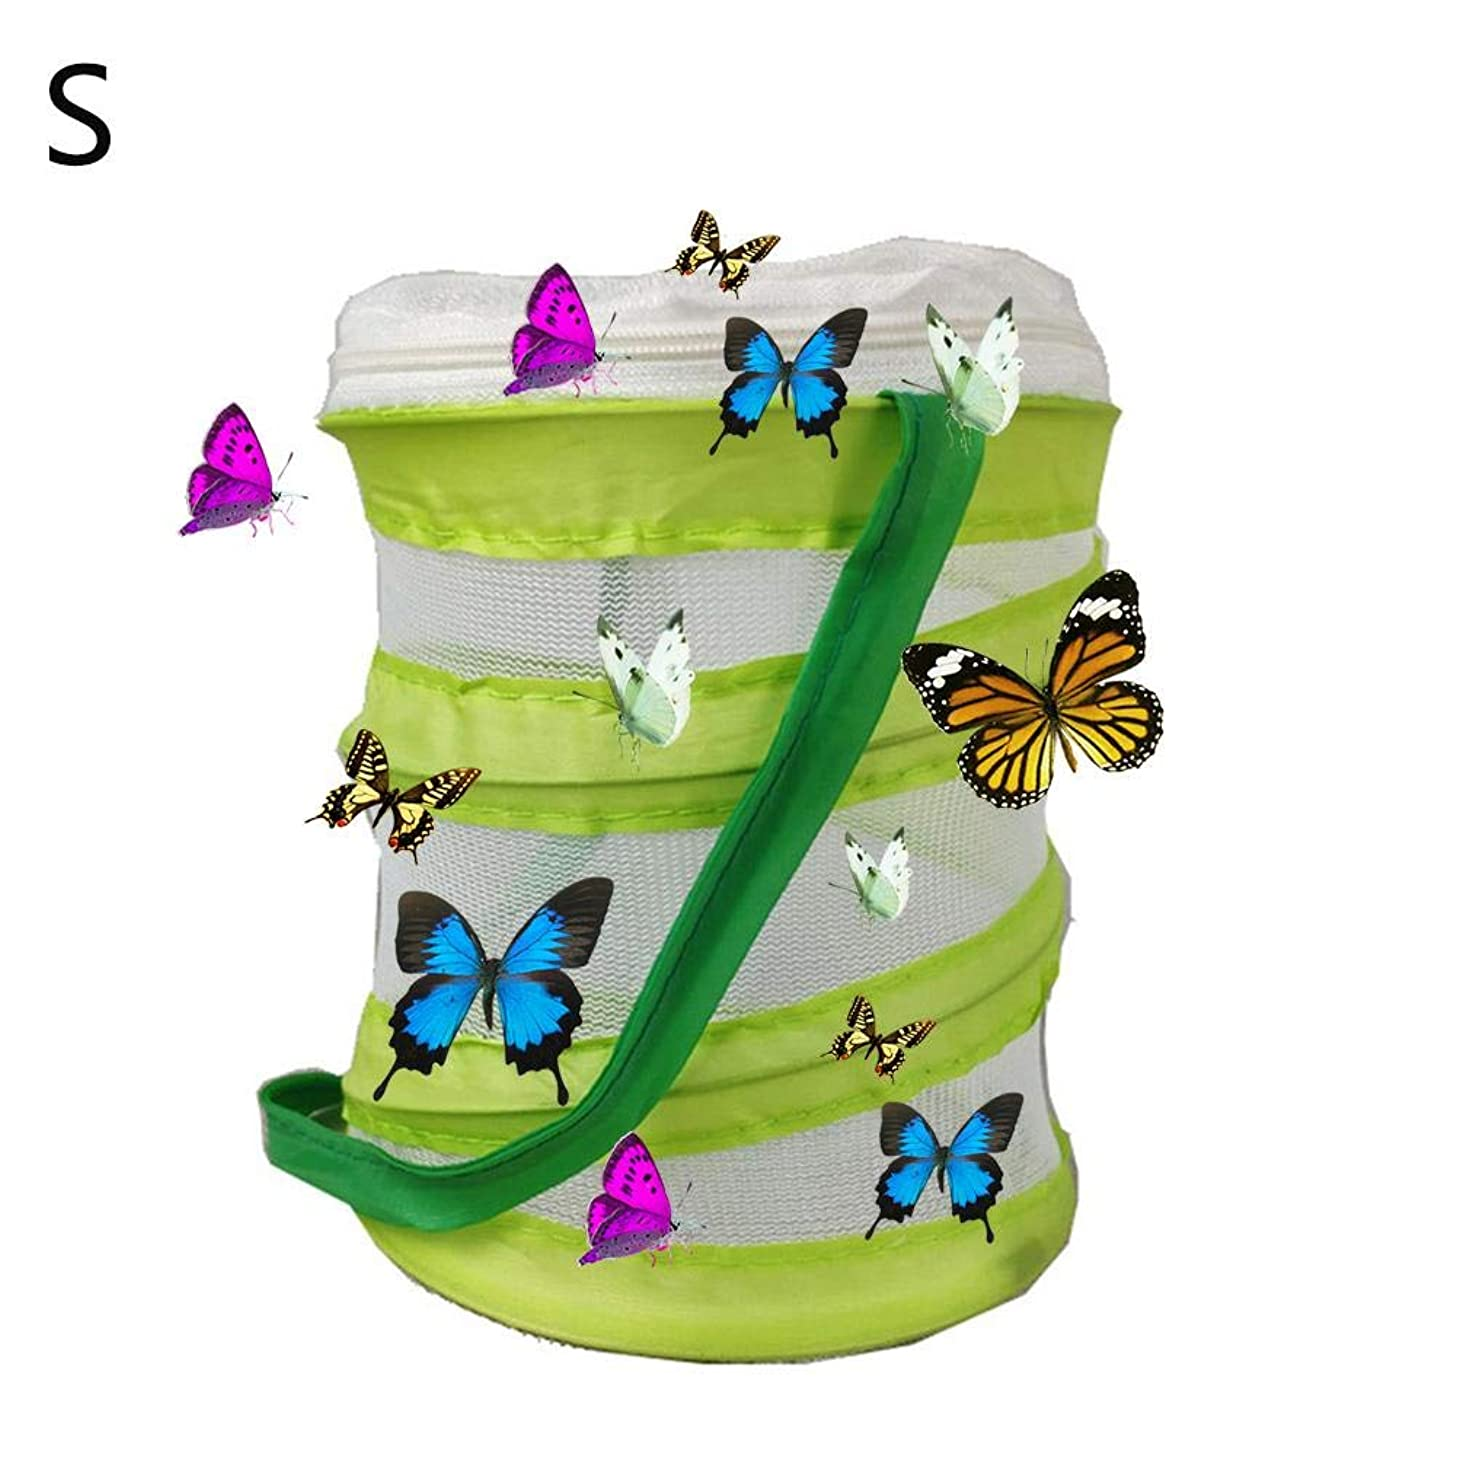 finessci Insect and Butterfly Habitat Cage,Foldable Portable Cage Terrarium Insect Breeding Net for Butterfly Locust Cricket Firefly Ladybug Spider(Green)